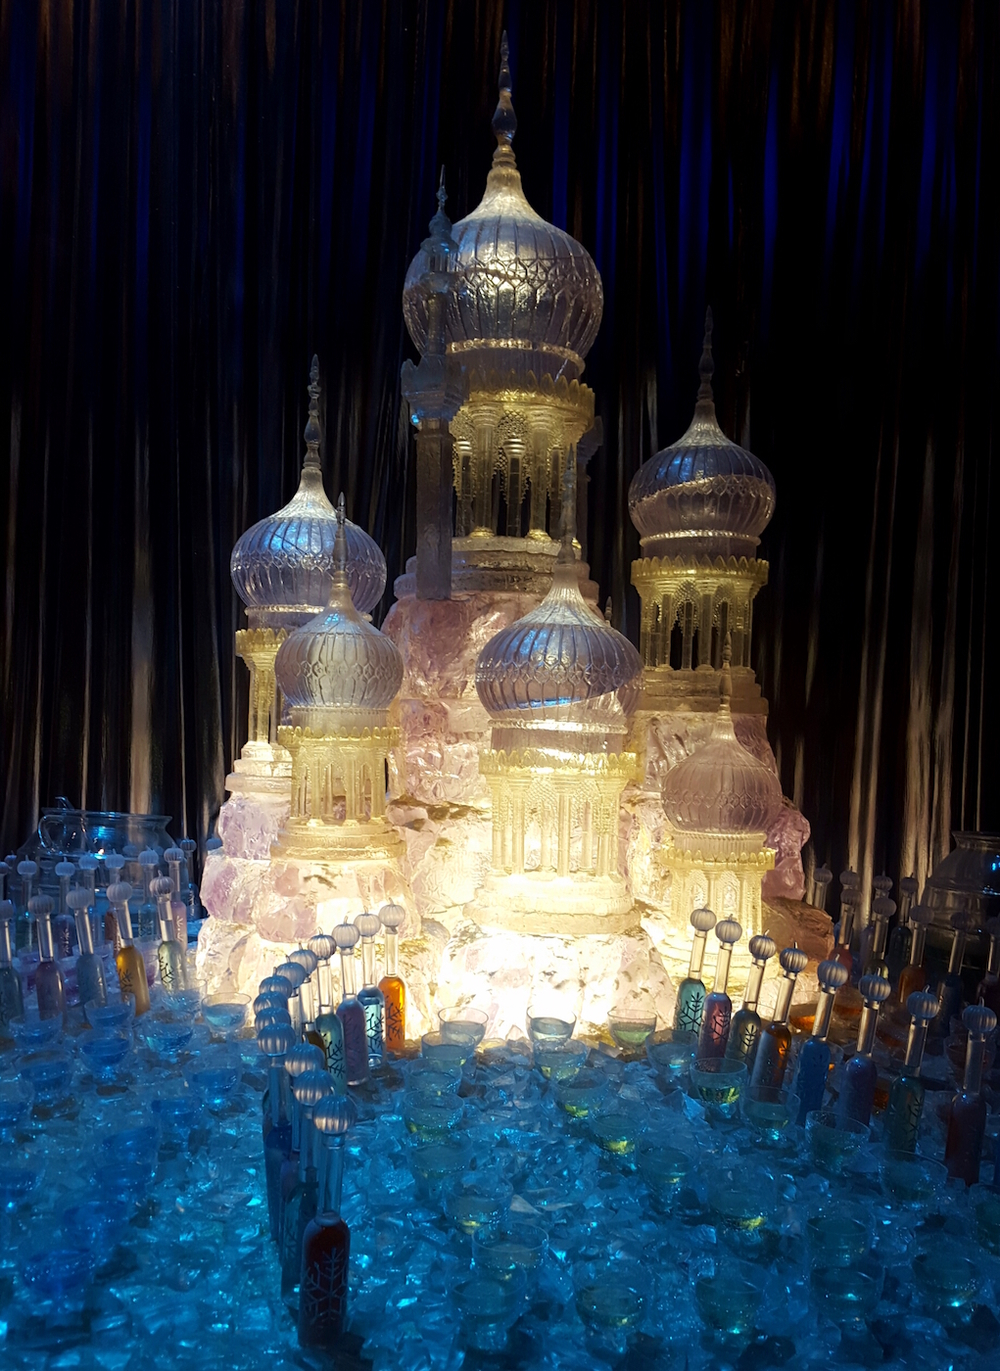 The feast at the Yule Ball